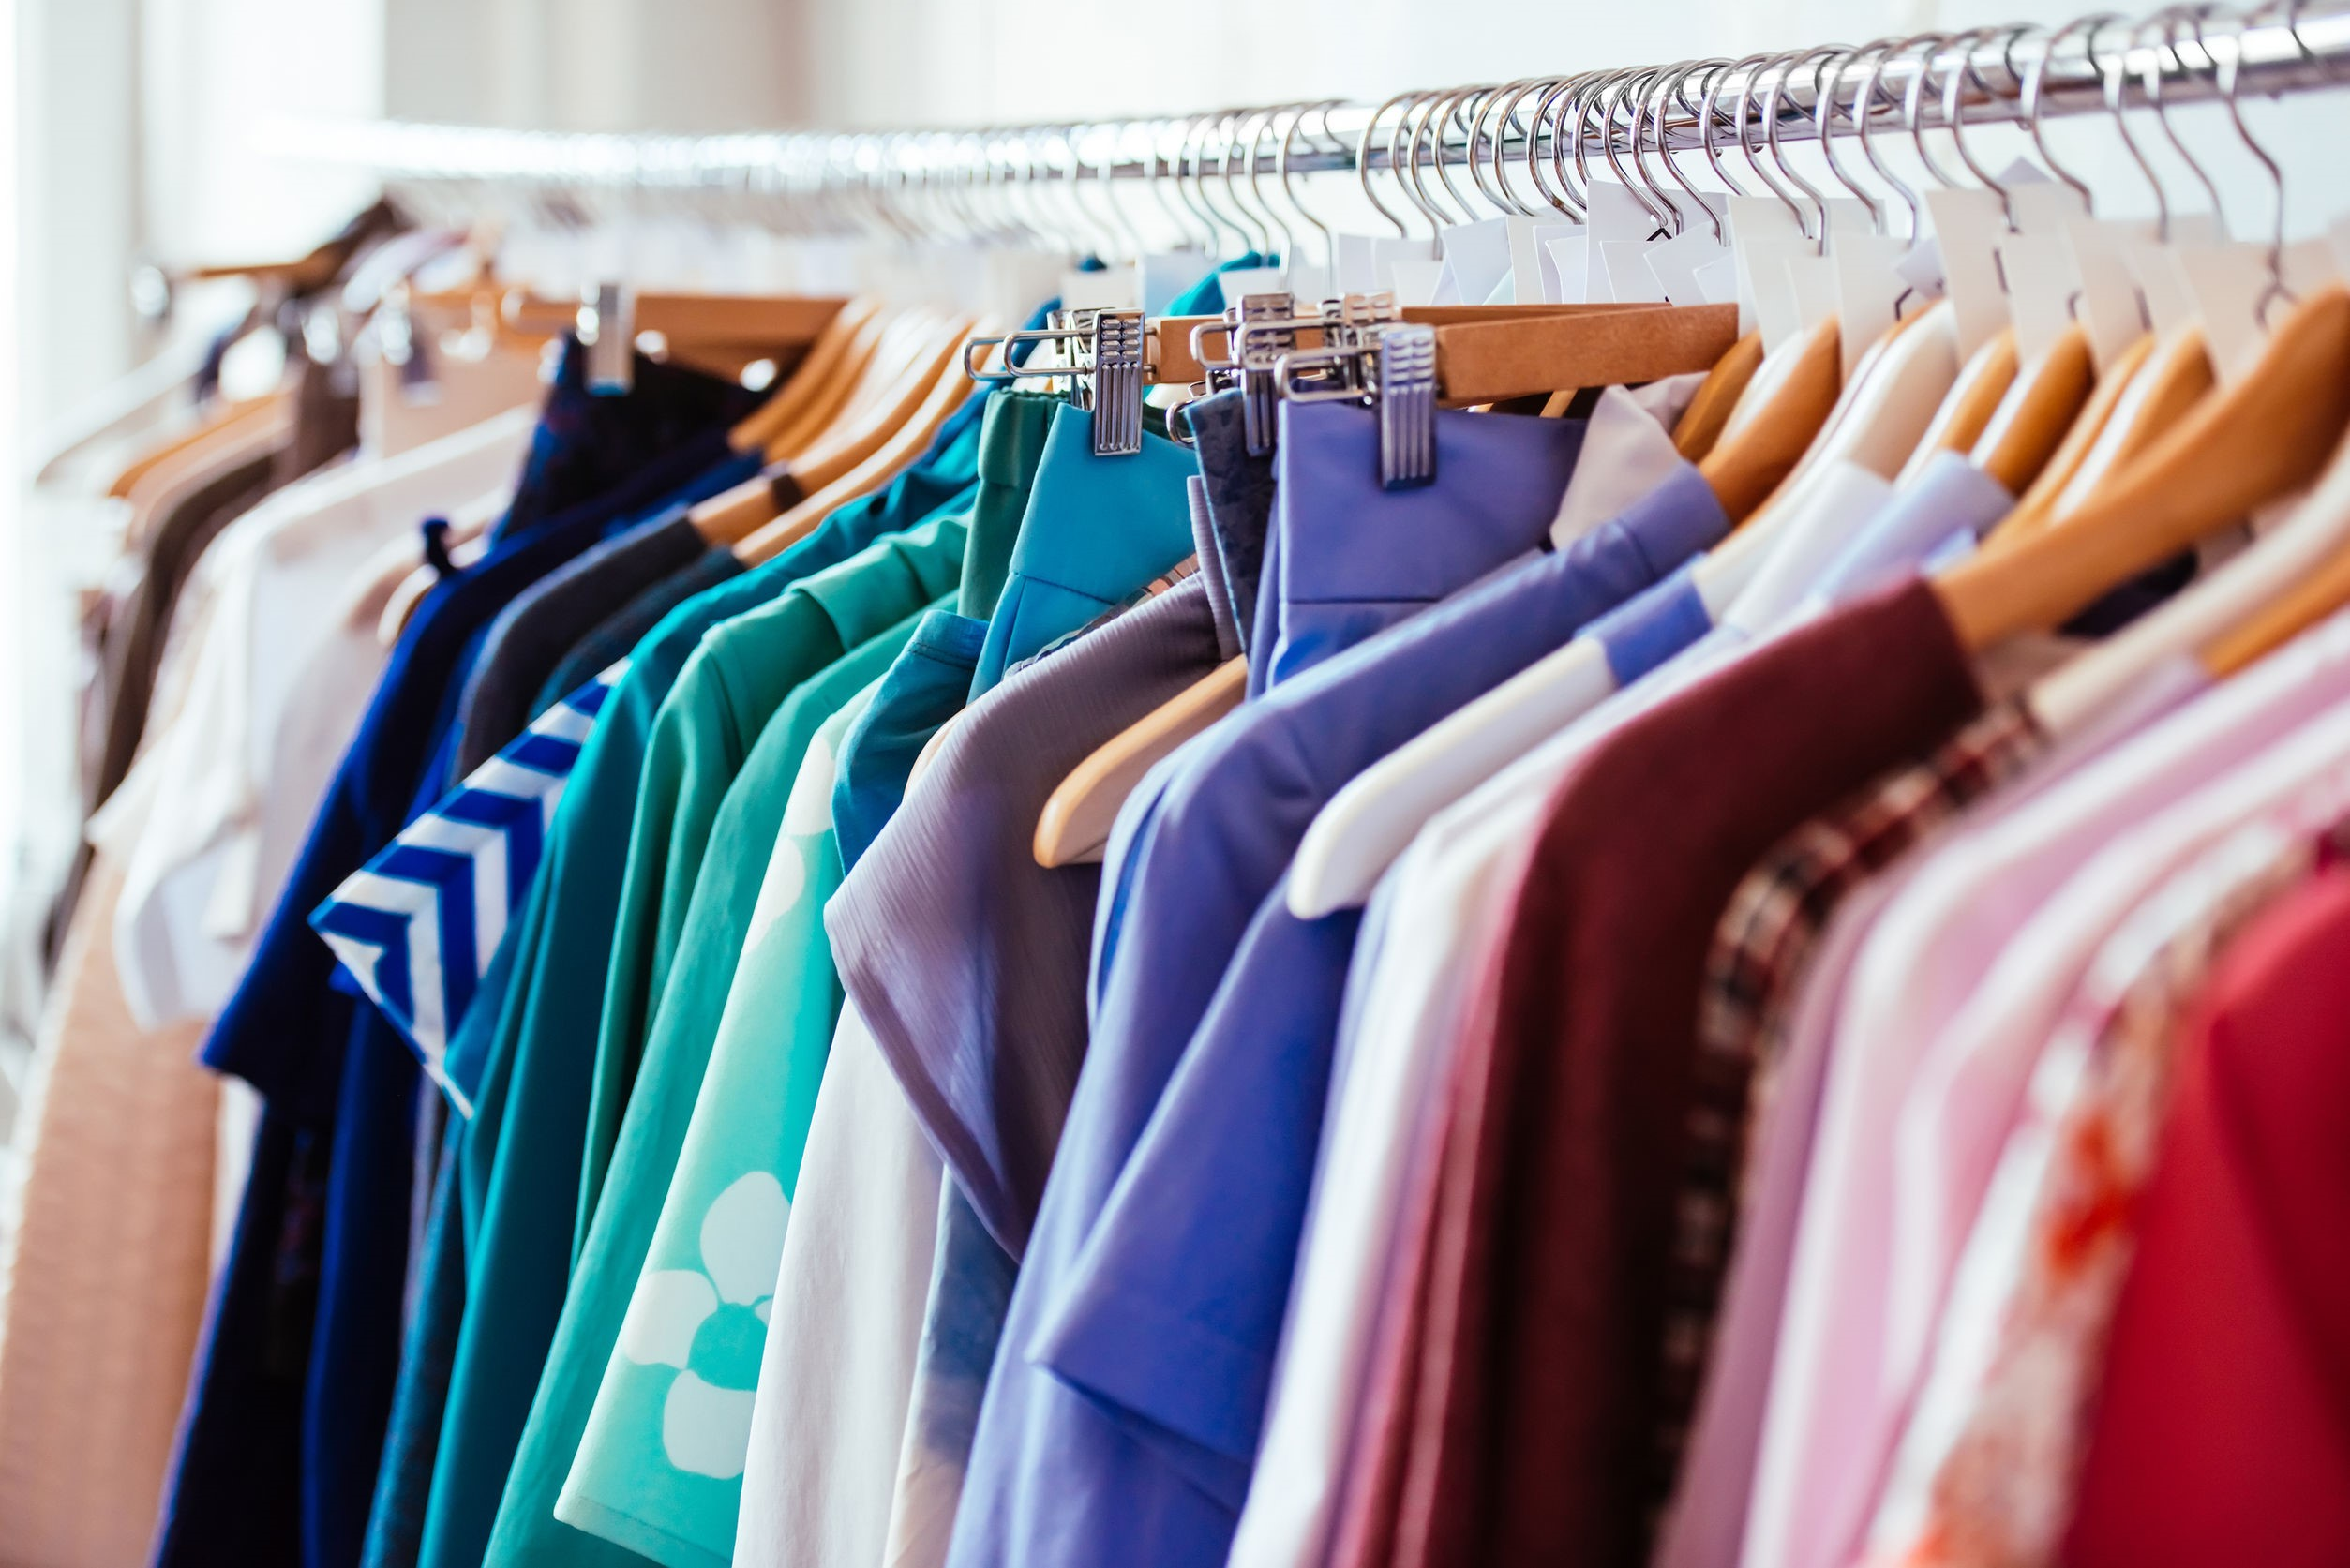 8 items of clothing that will look much better in the bin than on you